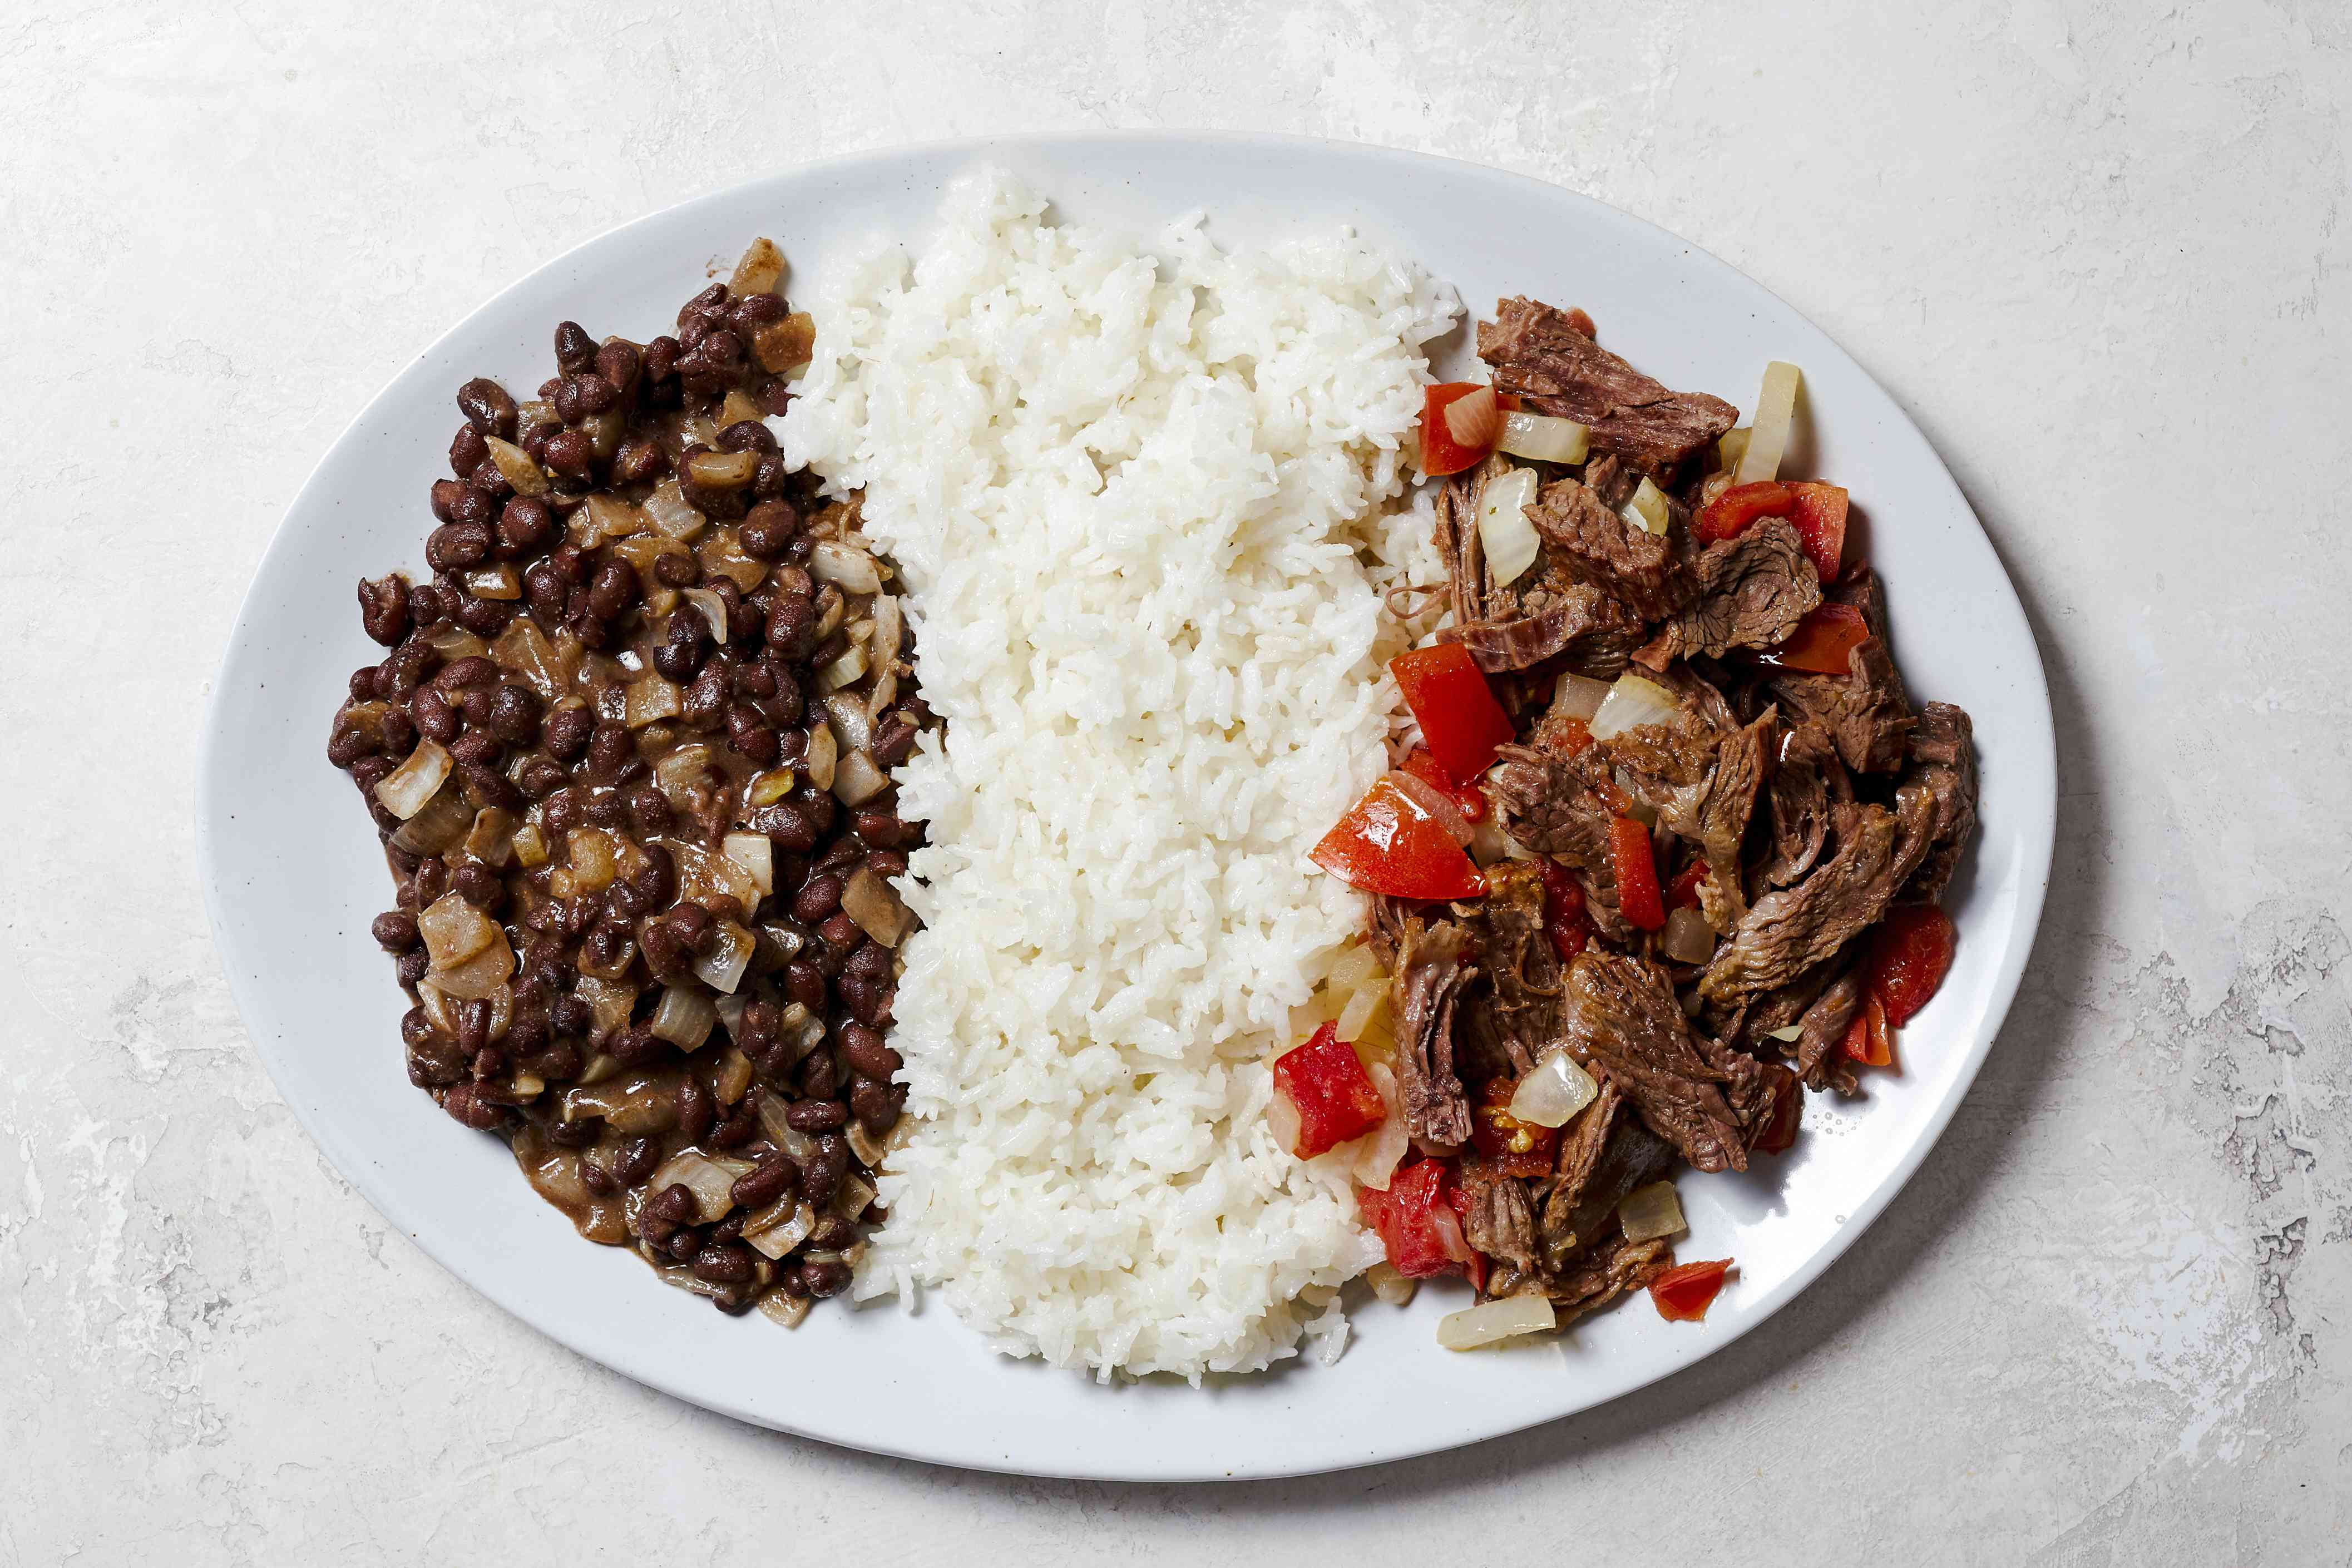 A plate with a porition of beans, rice, and steak